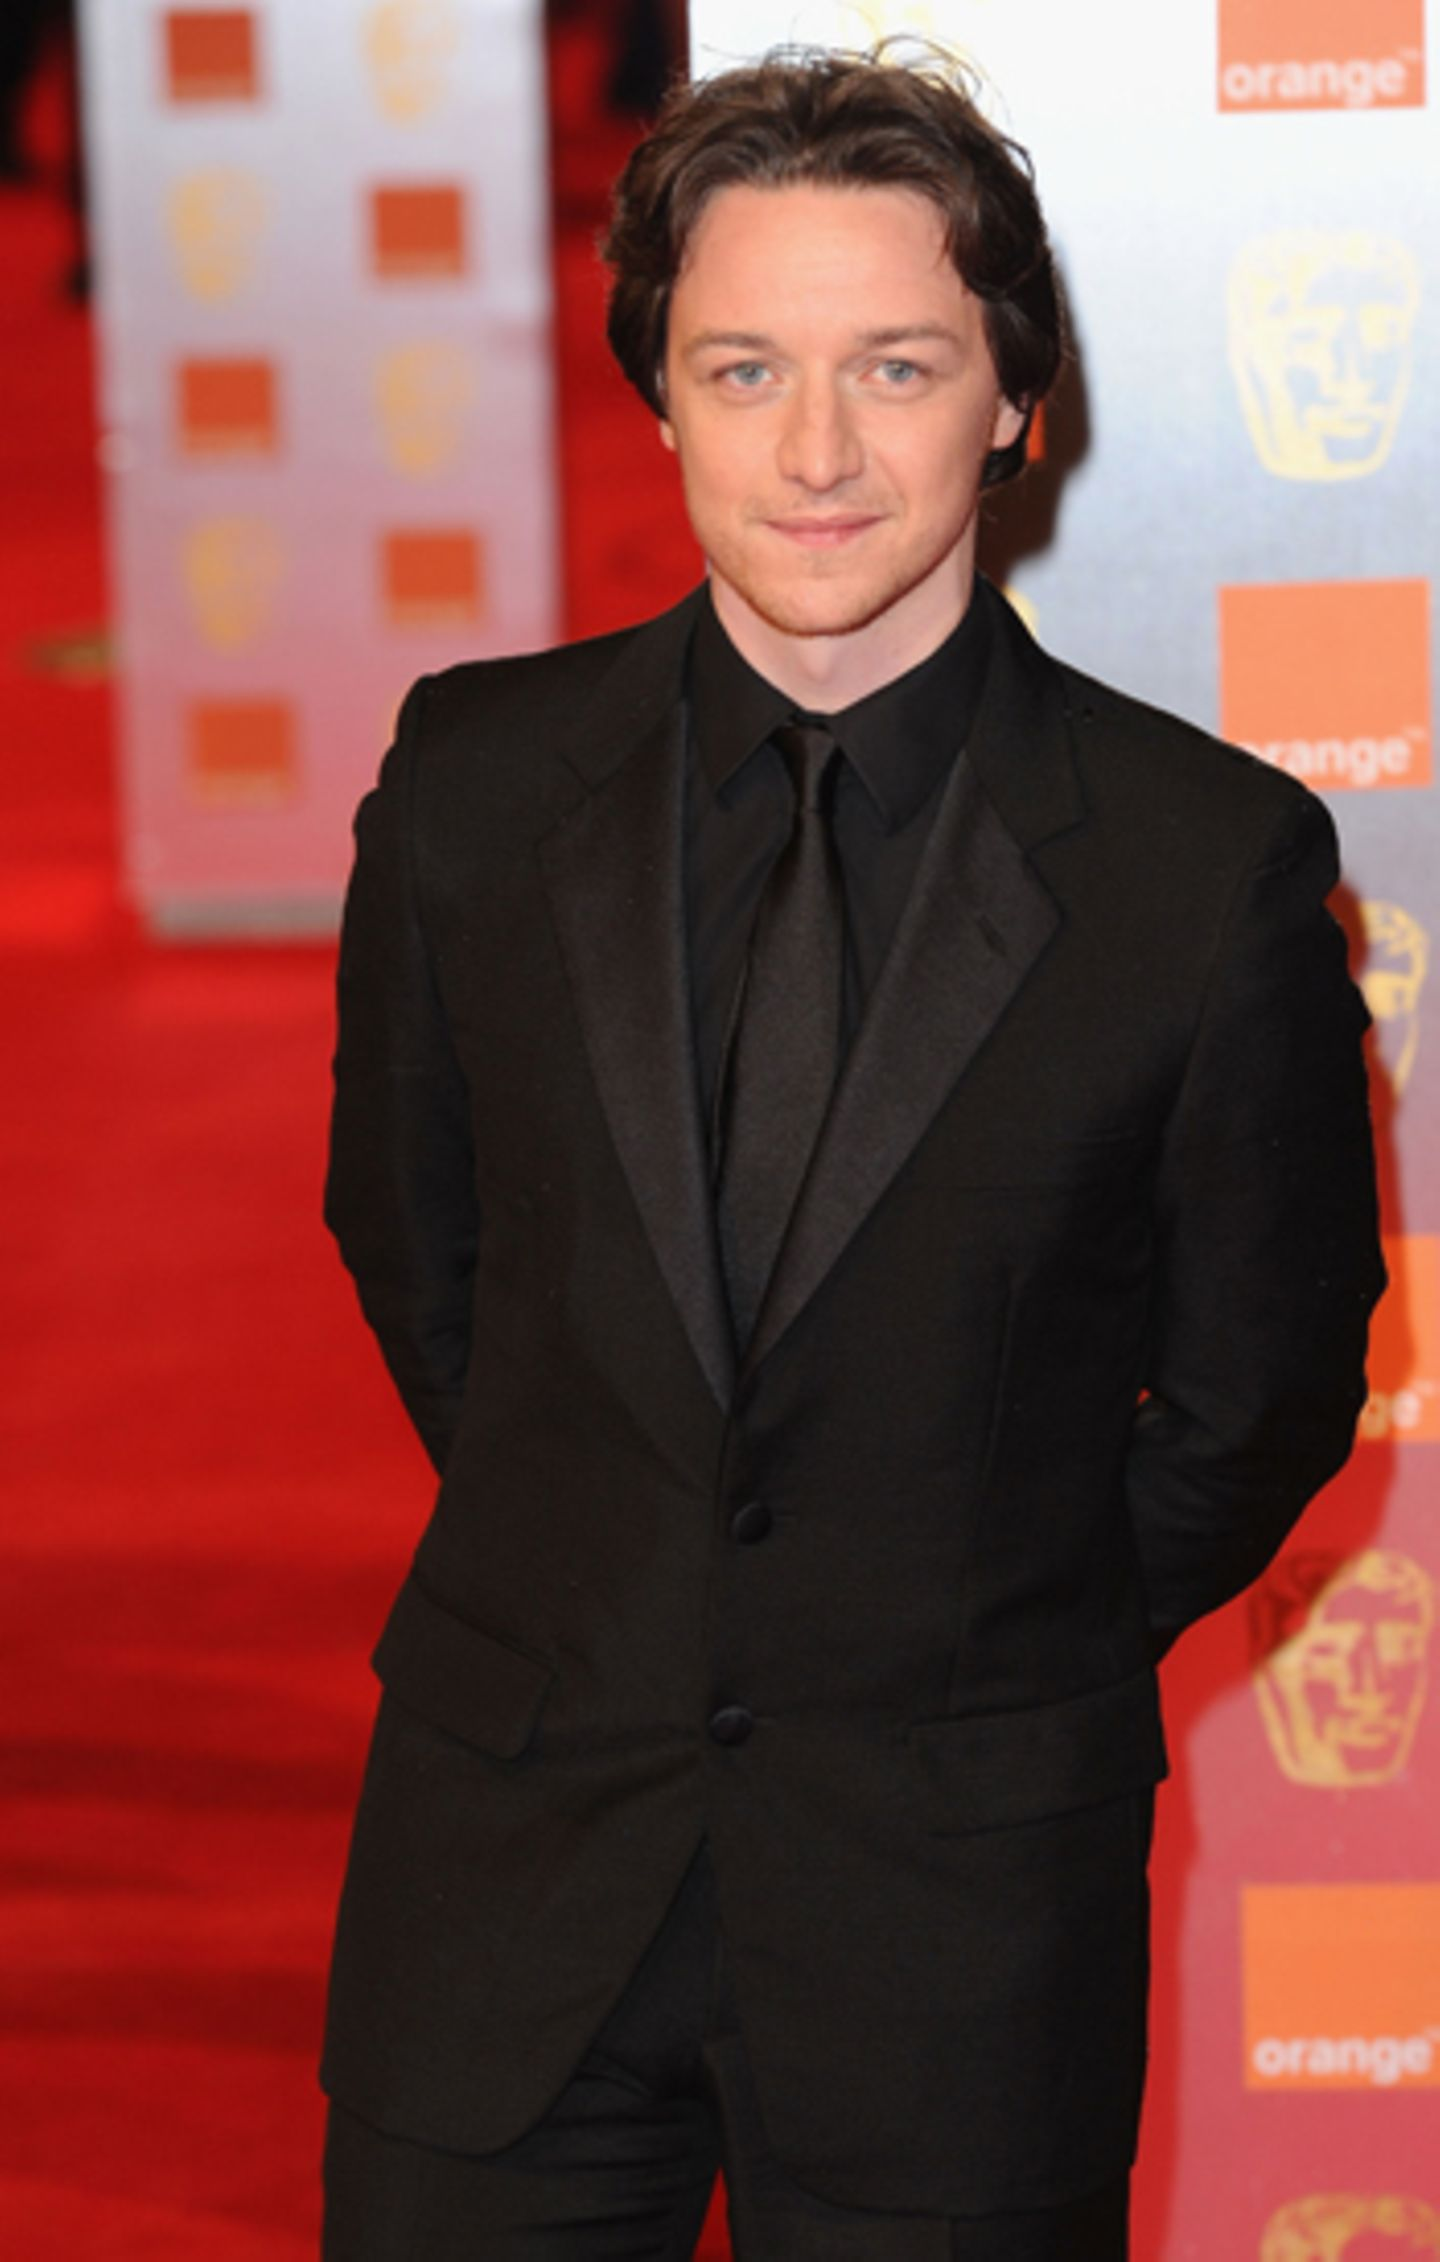 James McAvoy in Prada